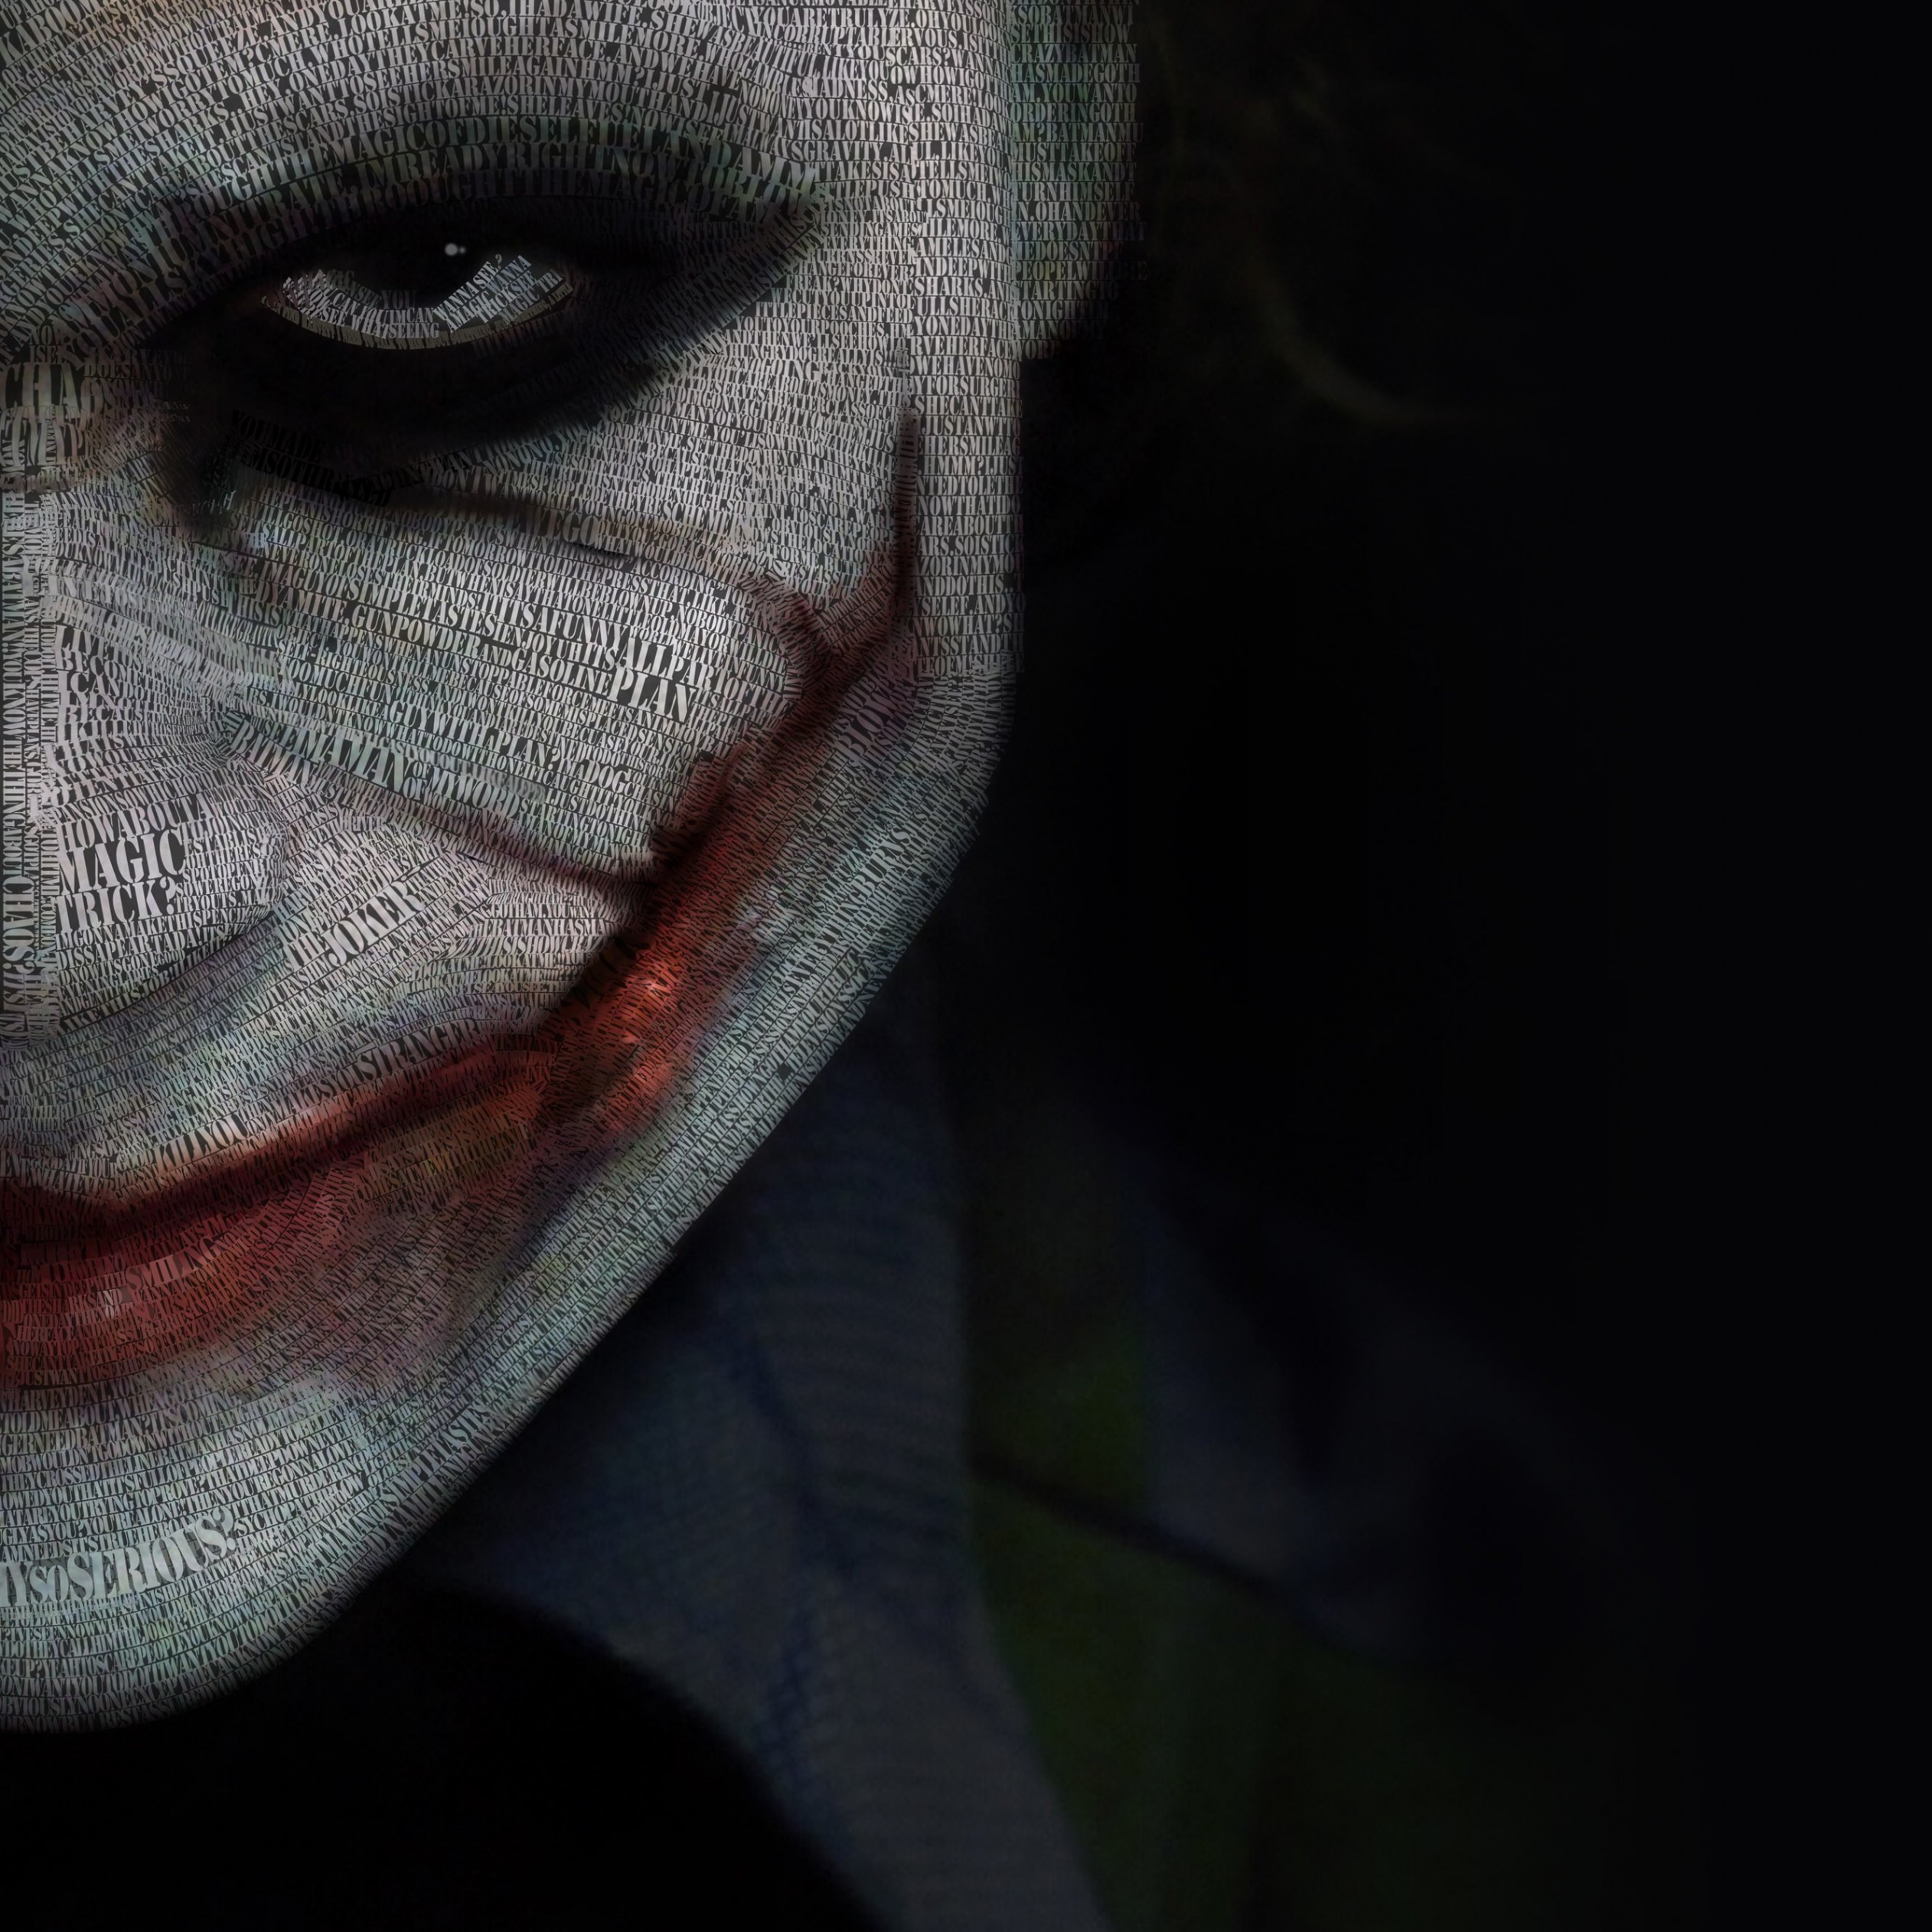 The Joker Typeface Portrait Wallpaper for Apple iPad 3